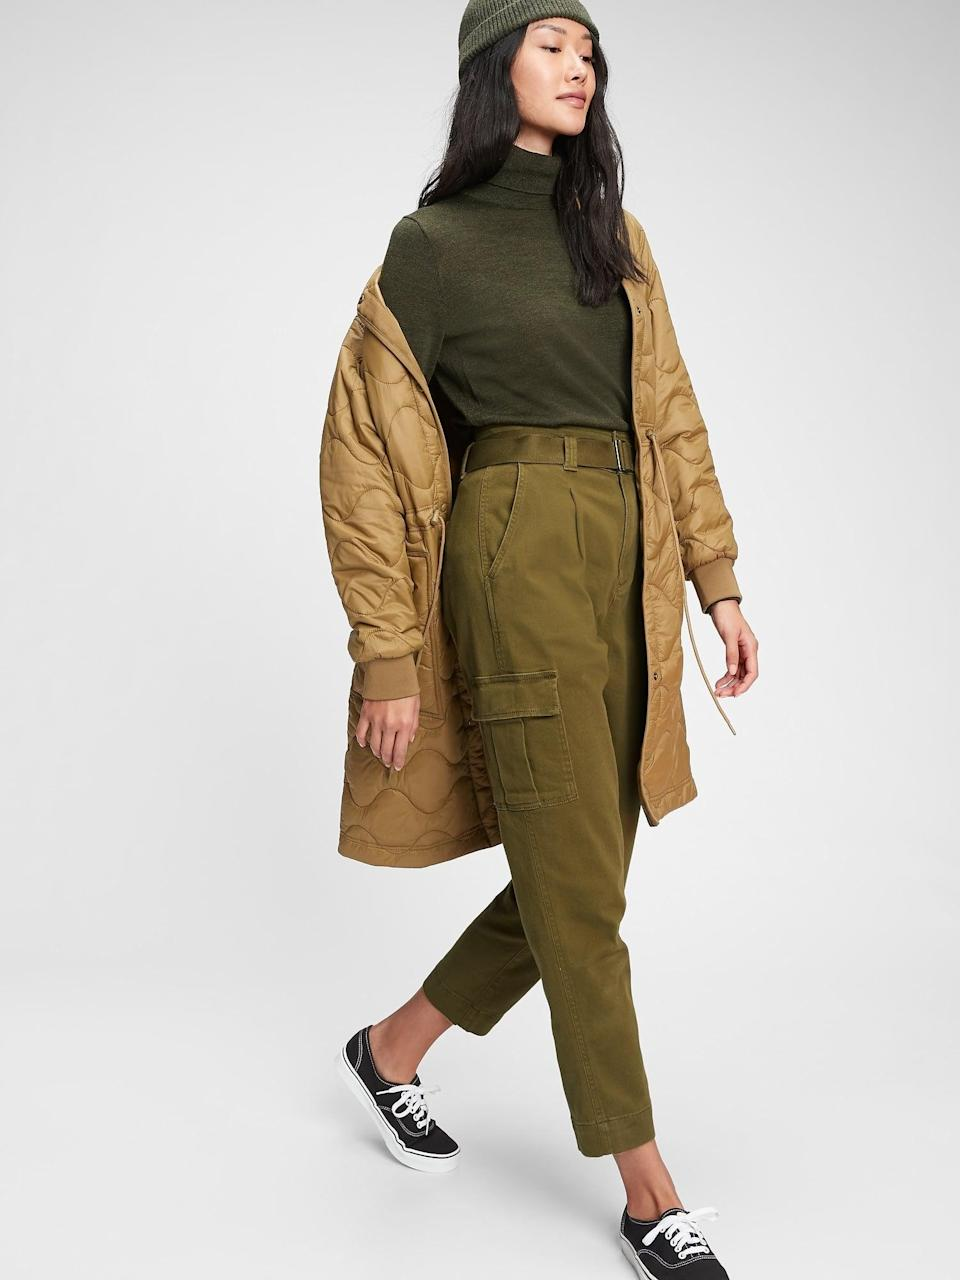 <p>If you're looking for a cool cargo-inspired pair, get these <span>Gap High Rise Belted Khaki Pants</span> ($44, originally $70).</p>